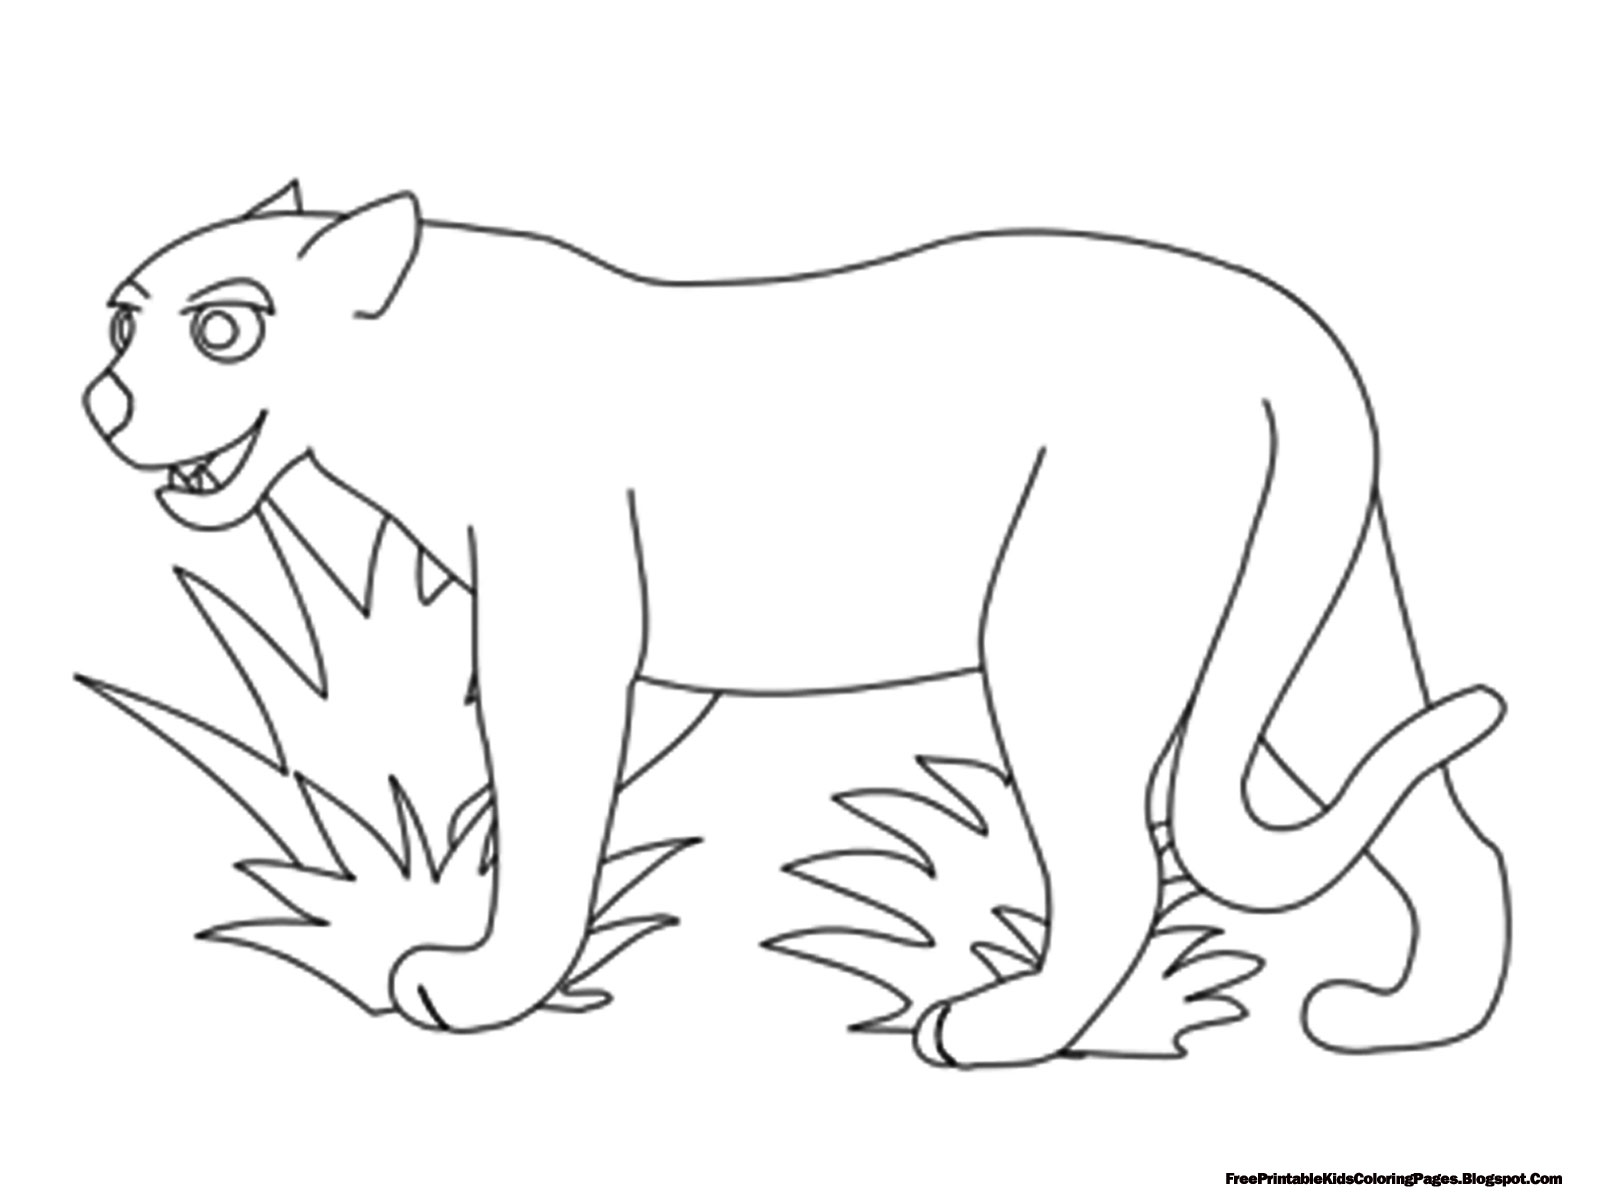 coloring pages jaguars - photo#28